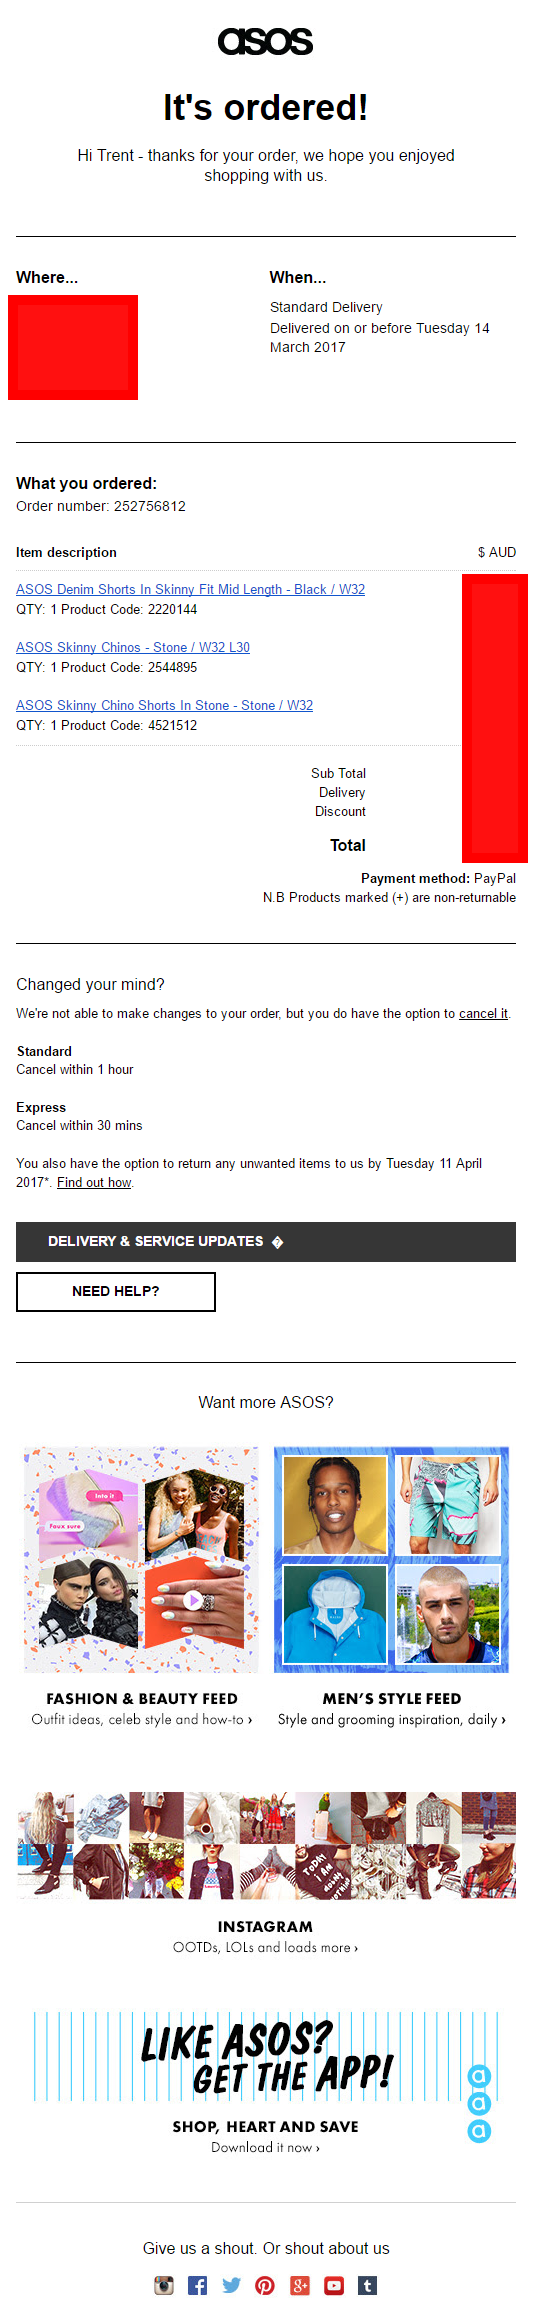 asos fashion order confirmation email post-purchase